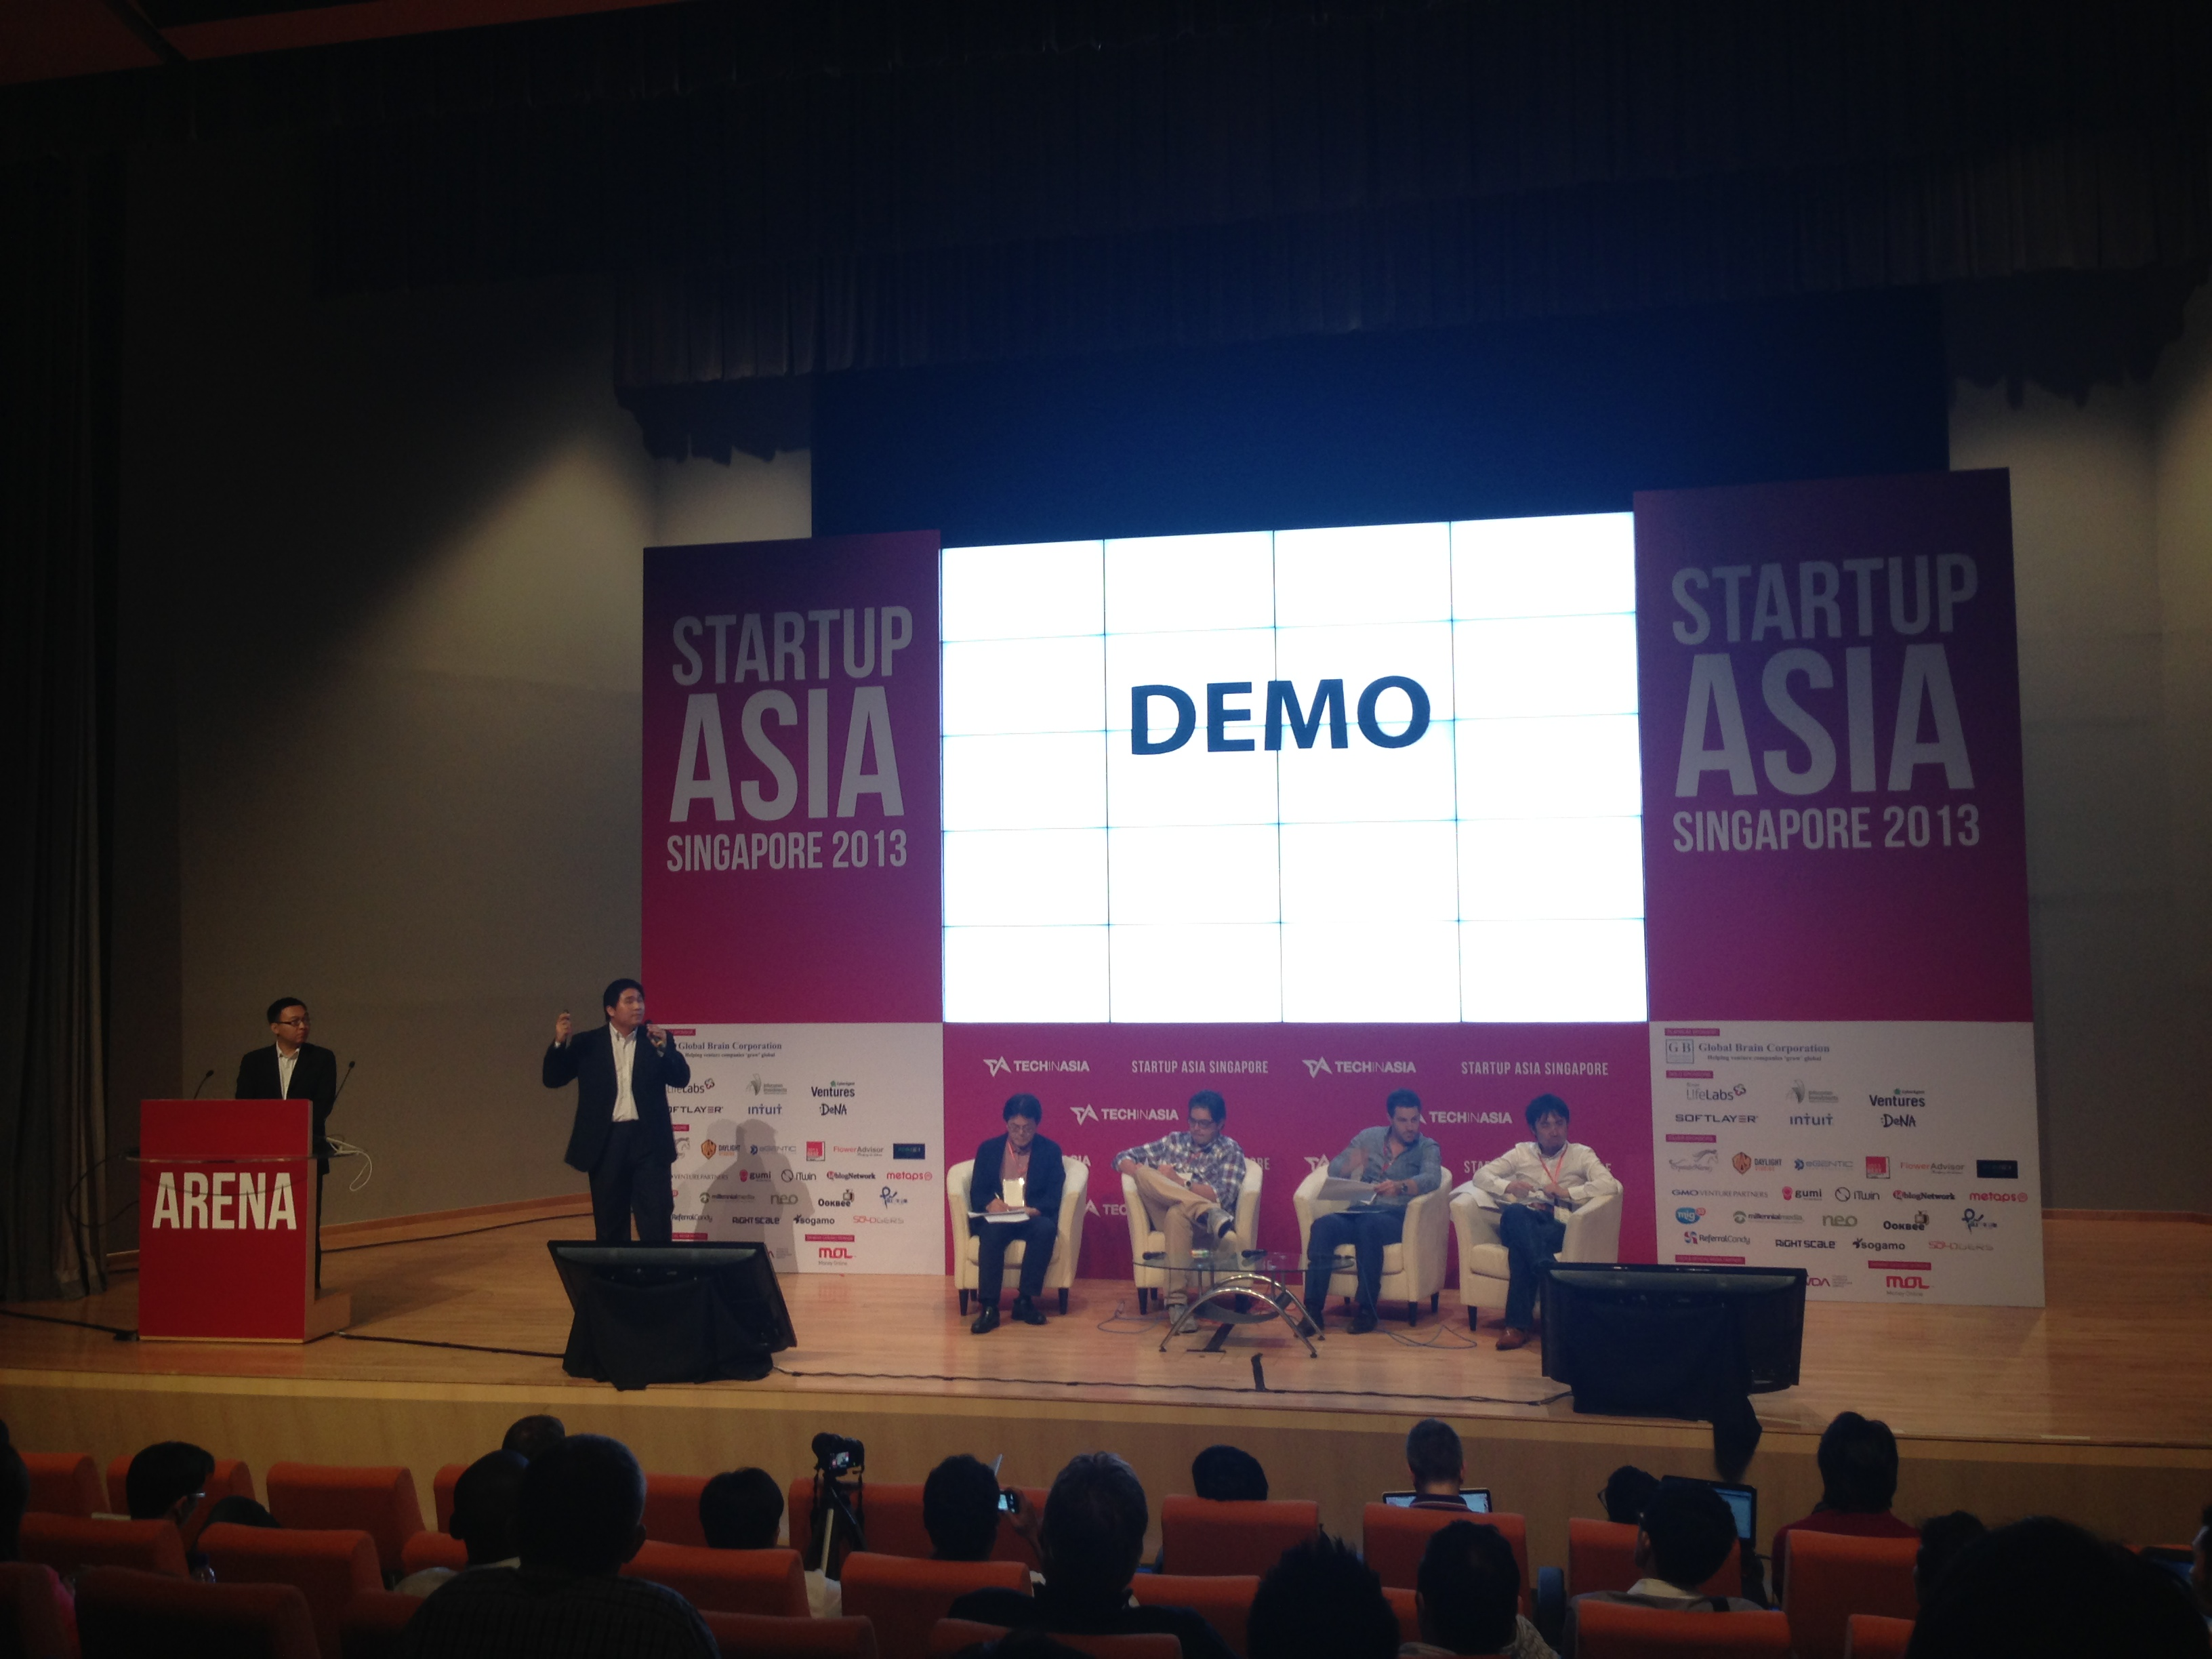 startup arena singapore 2013 - Tech in Asia